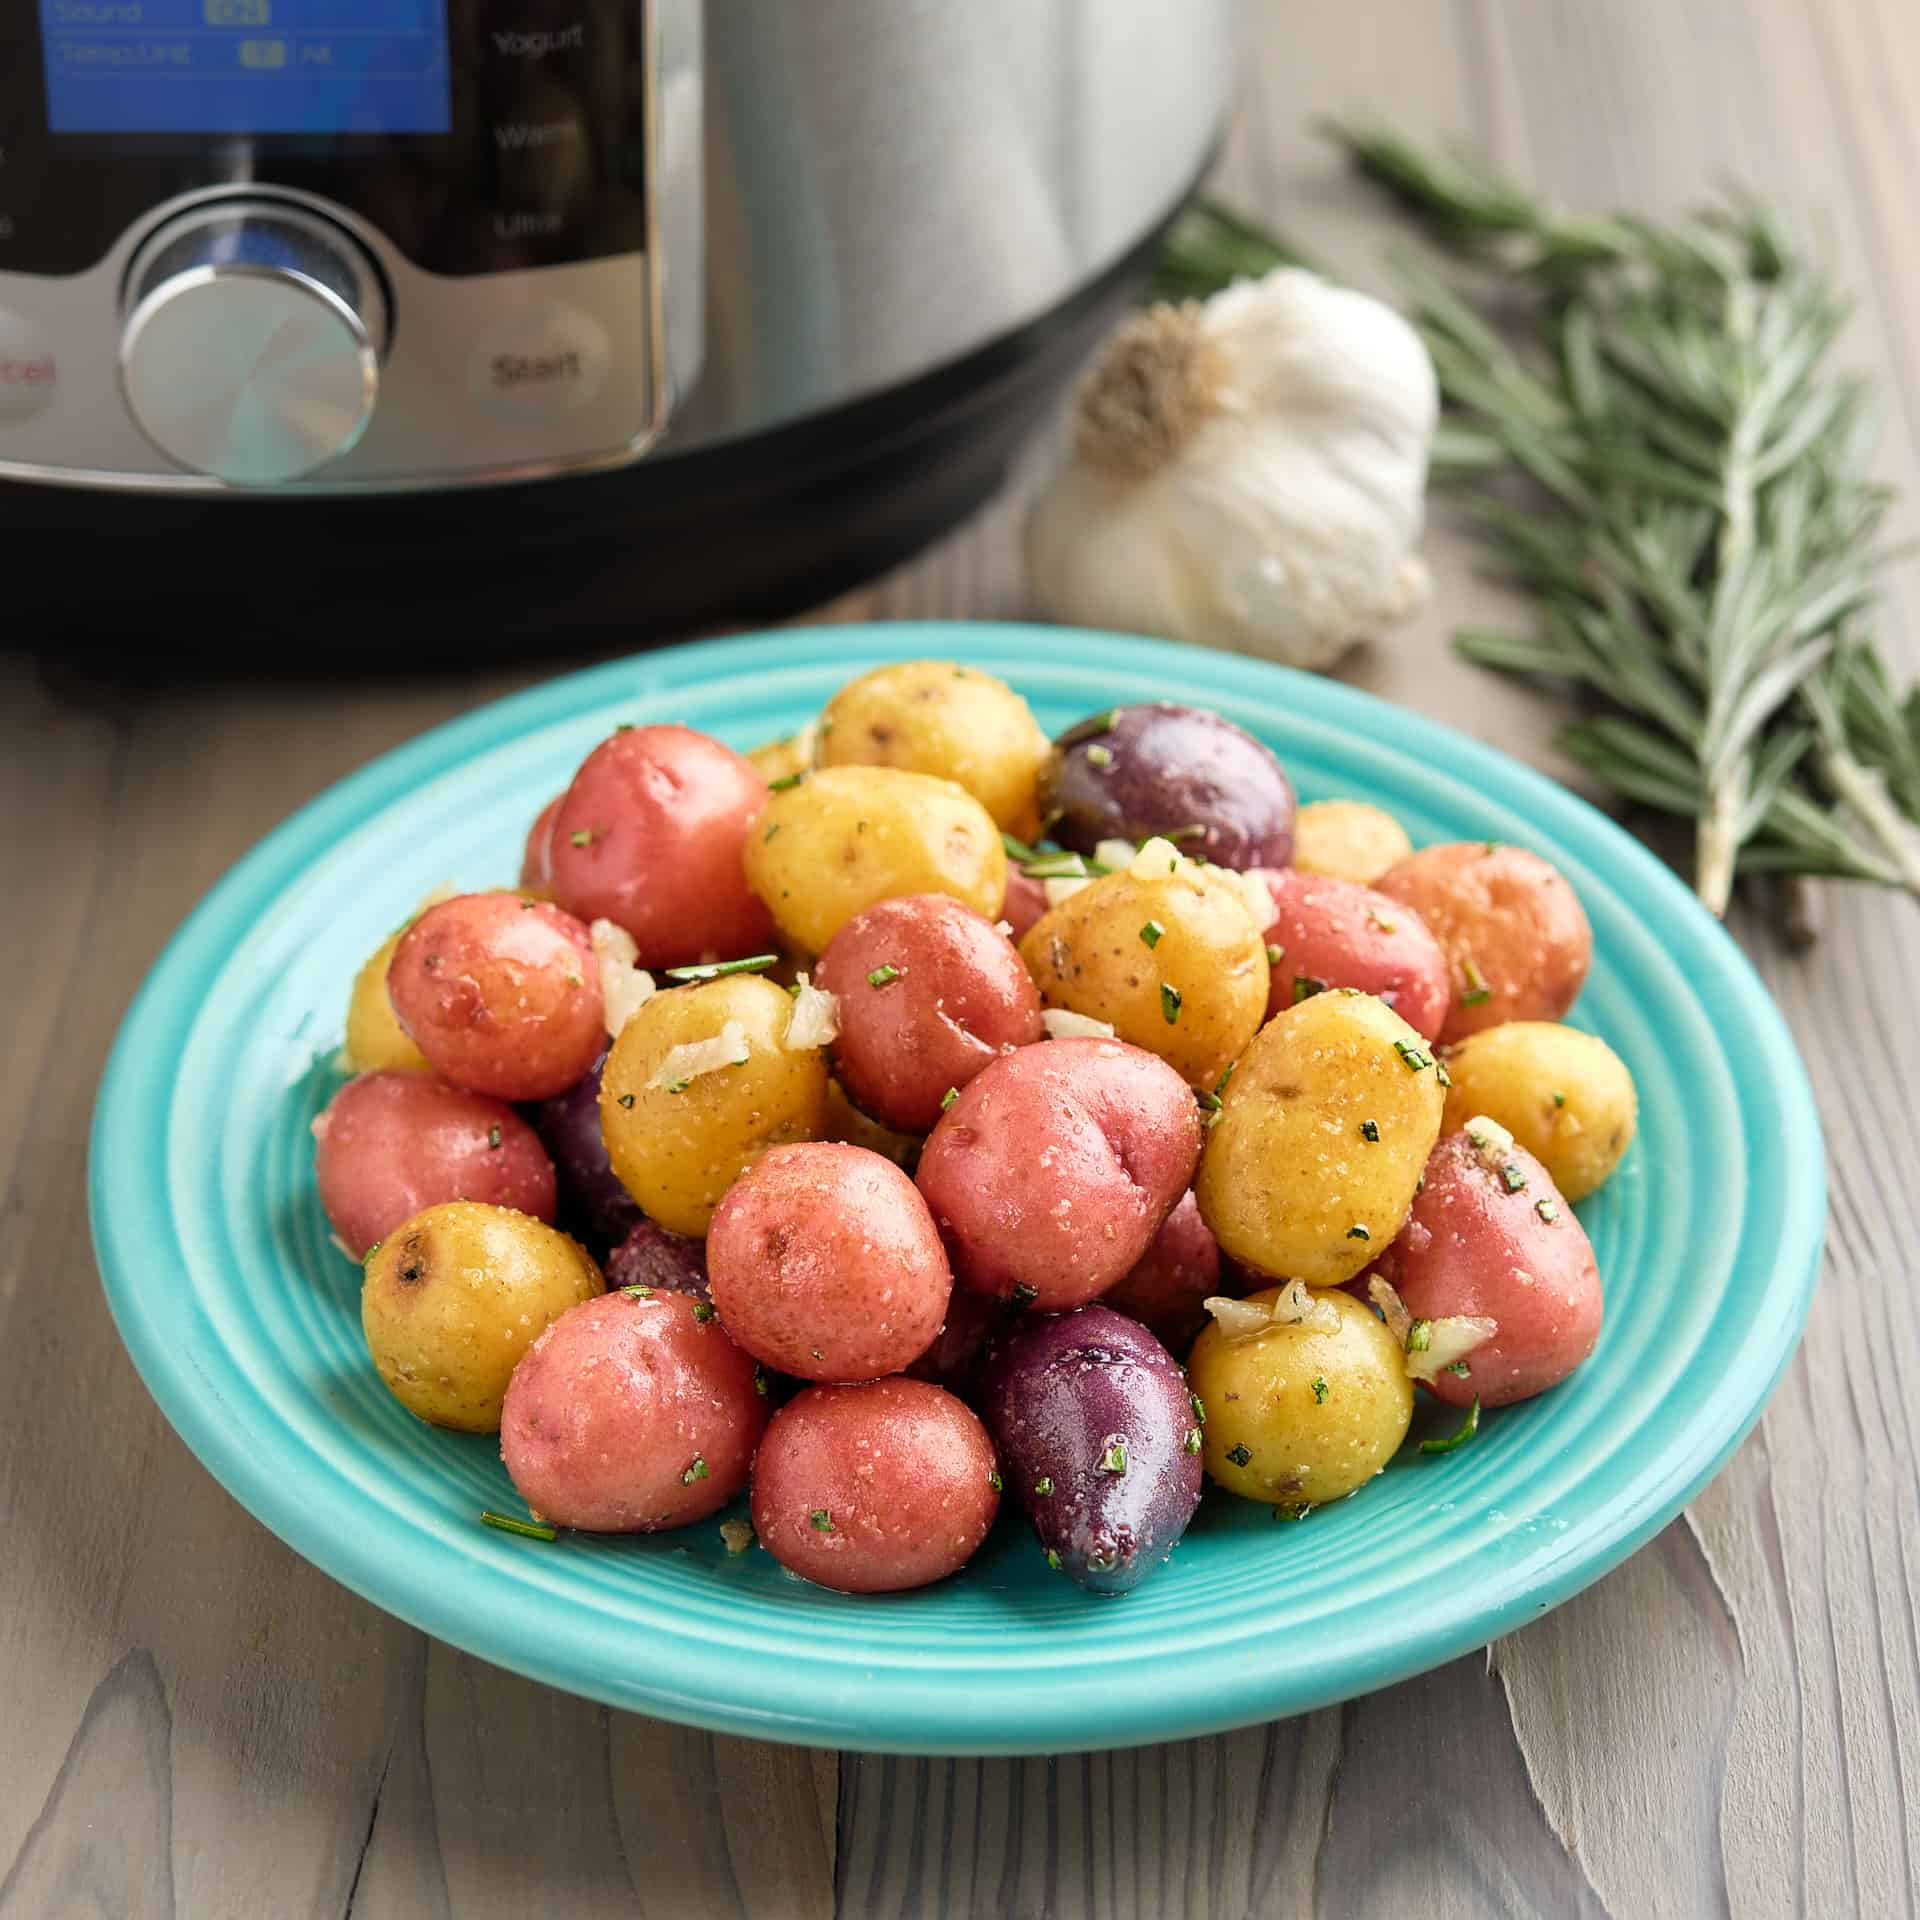 A plate of rainbow baby potatoes sprinkled with garlic and rosemary, with a sprig of rosemary, a head of garlic, and a pressure cooker in the background